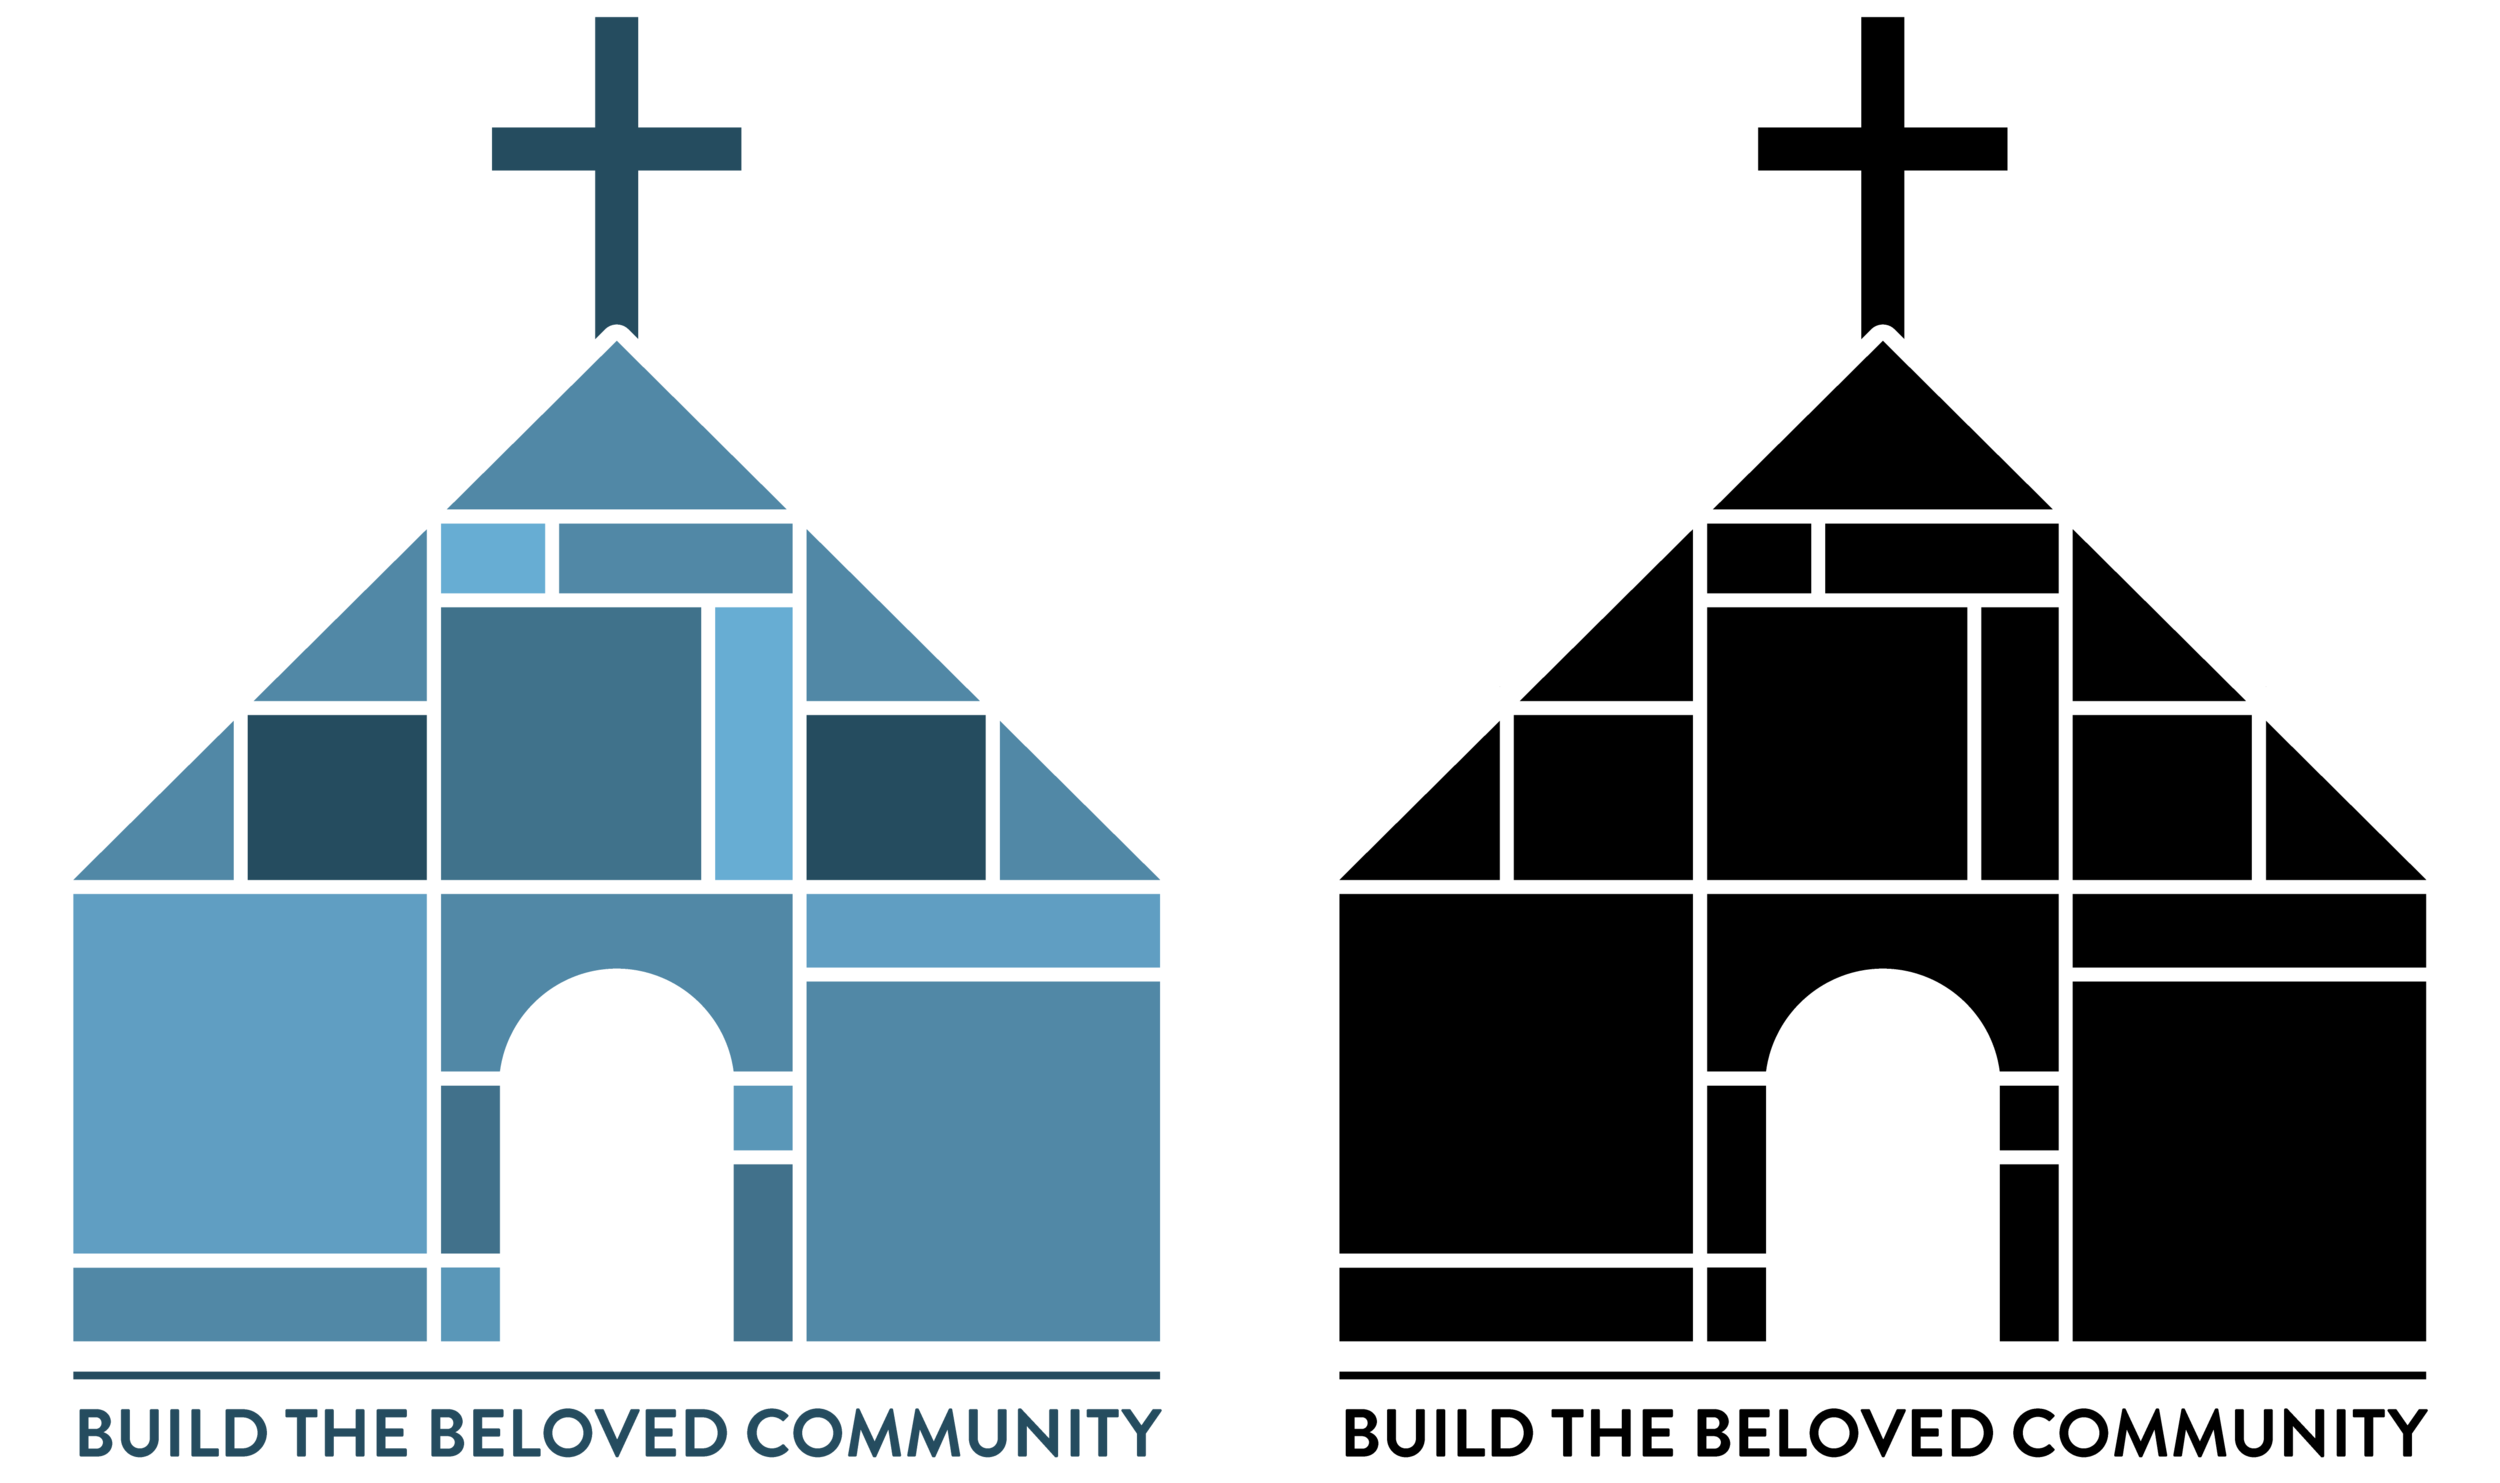 build-the-beloved-community-logo-color-and-bw.png